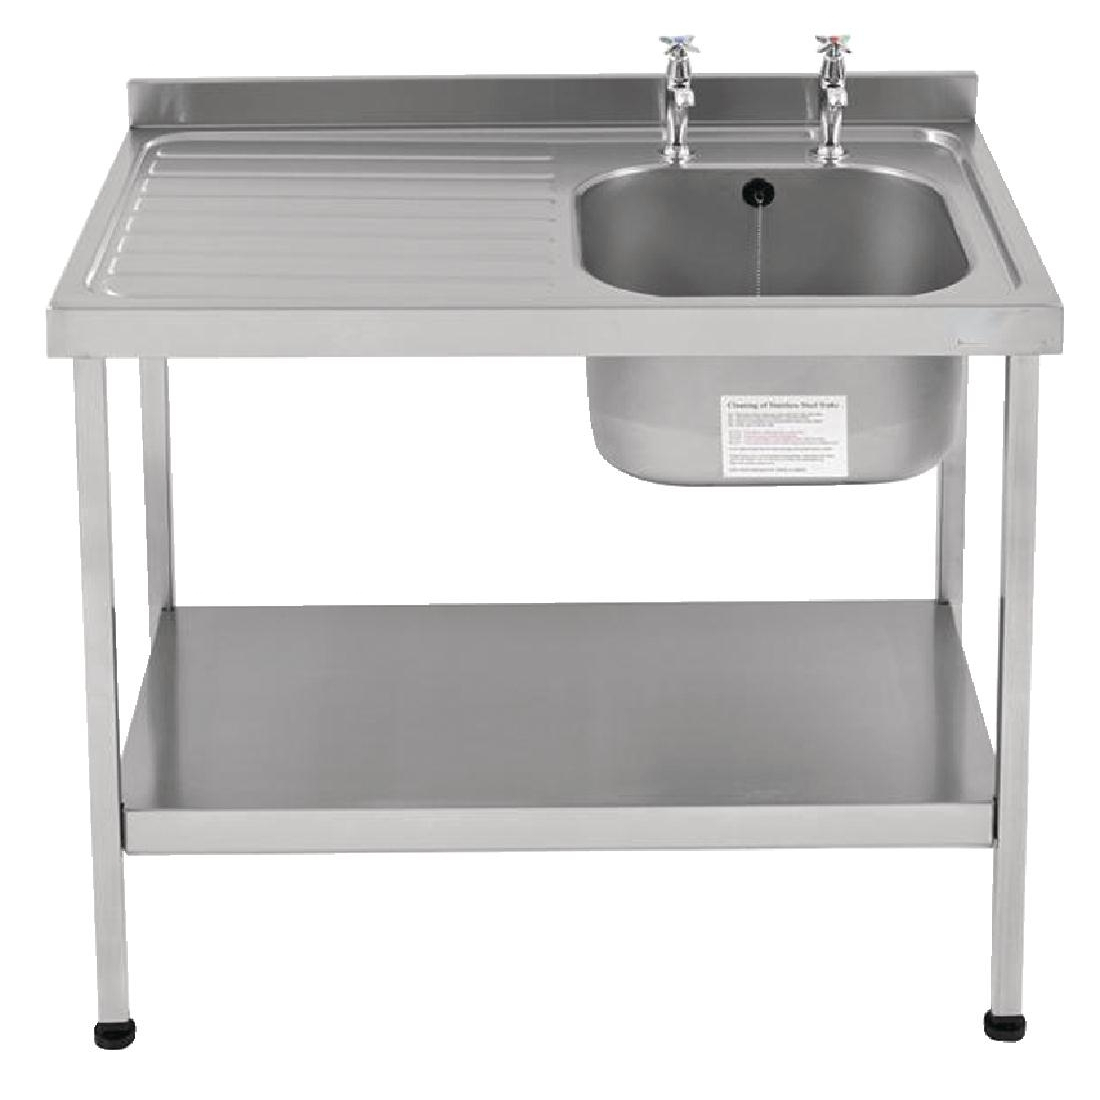 Franke Sissons Self Assembly Stainless Steel Sink Right Hand Bowl 1200x600mm